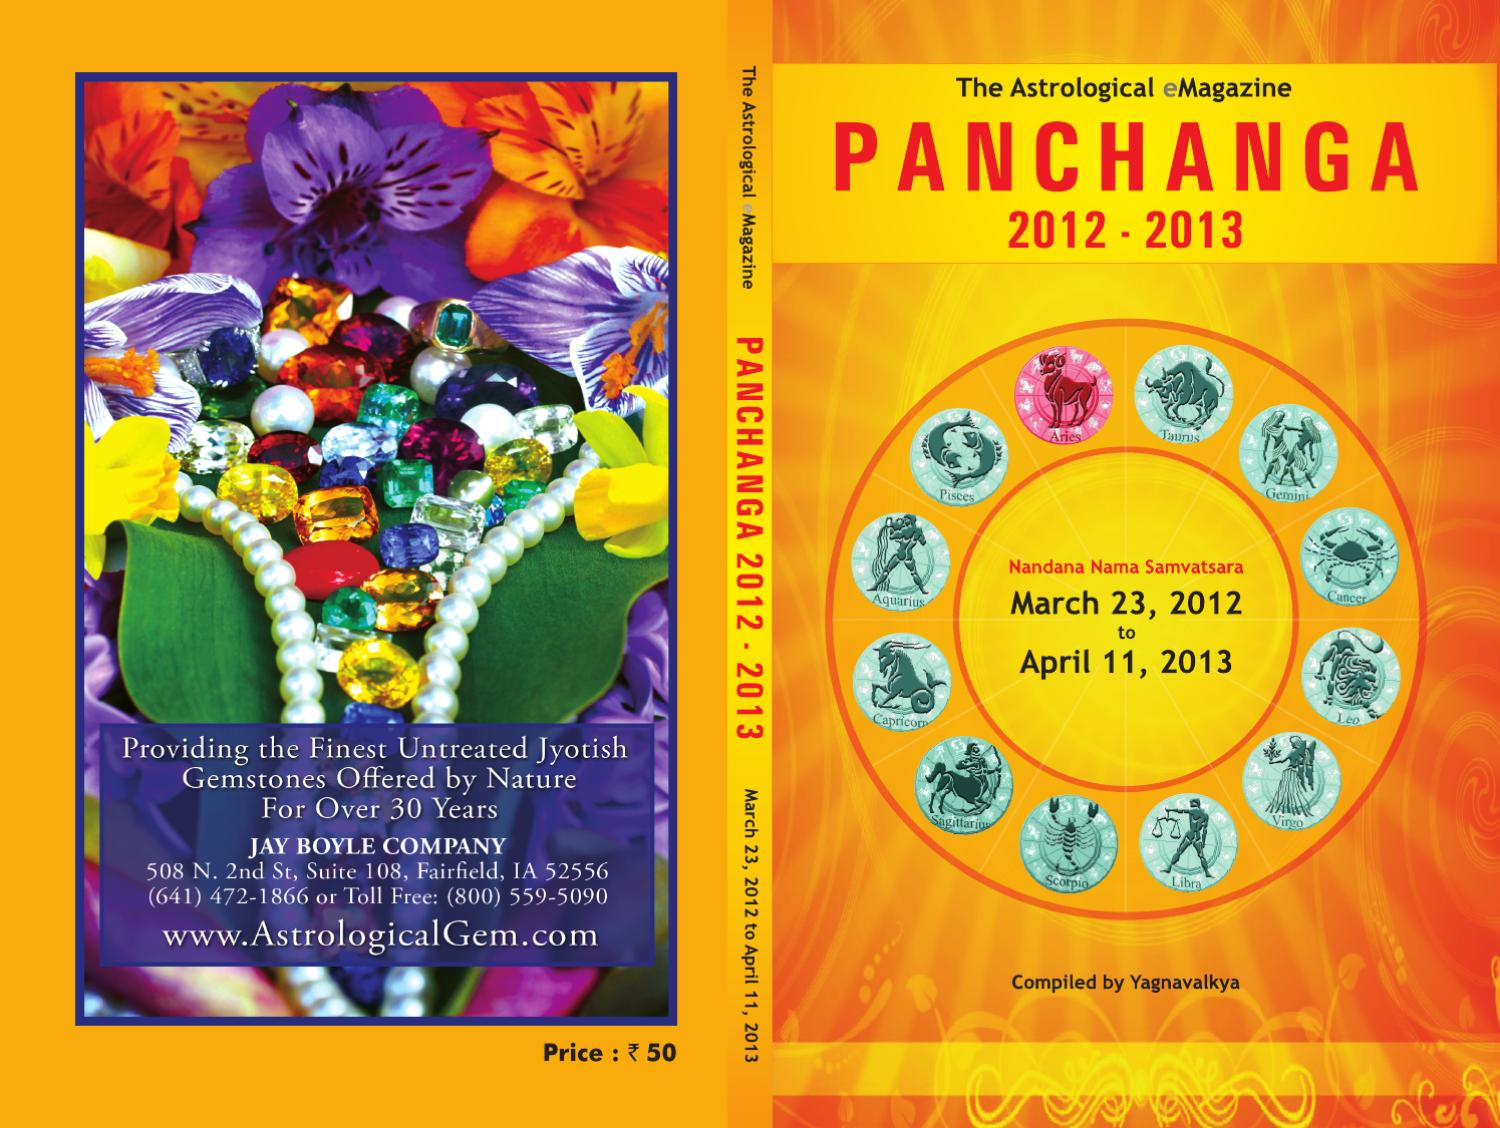 The Astrological eMagazine Panchanga 2012-2013 by Niranjan